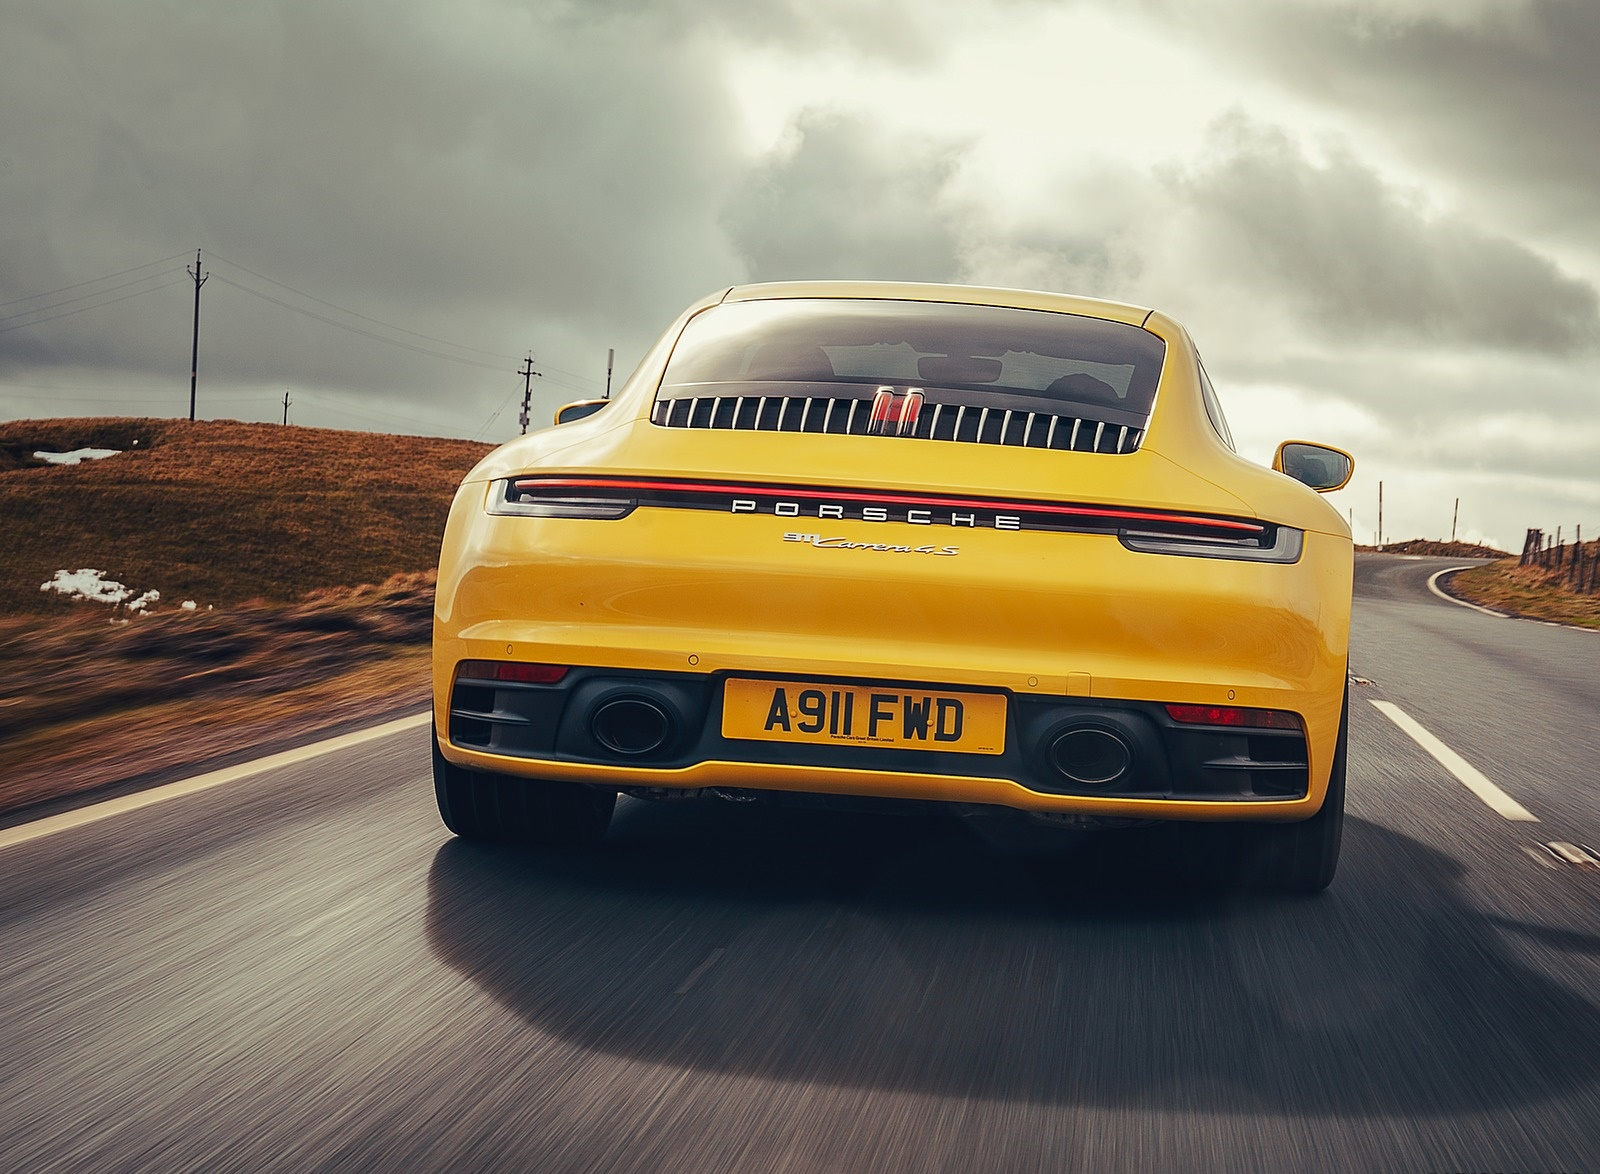 2019 Porsche 911 (992) Carrera 4S (UK-Spec) Rear Wallpaper (10)